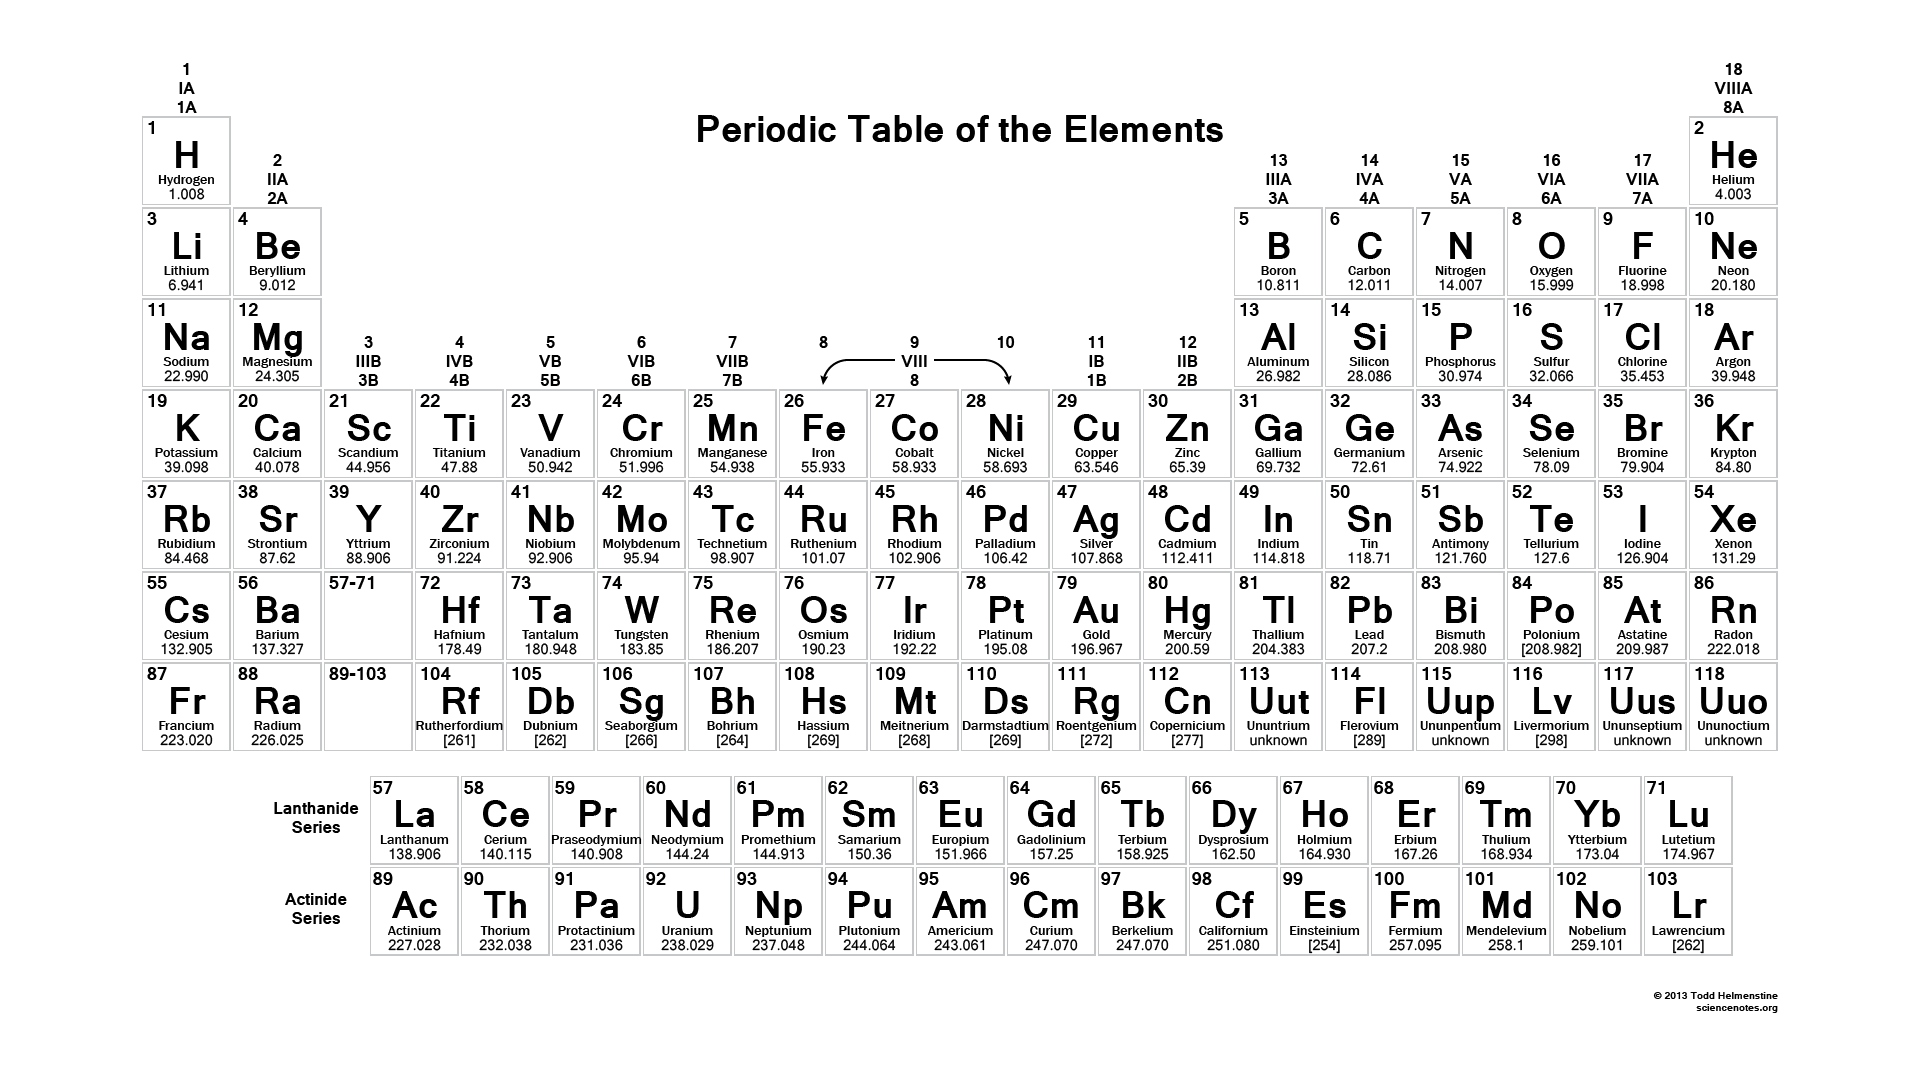 Black/White Printable Periodic Table